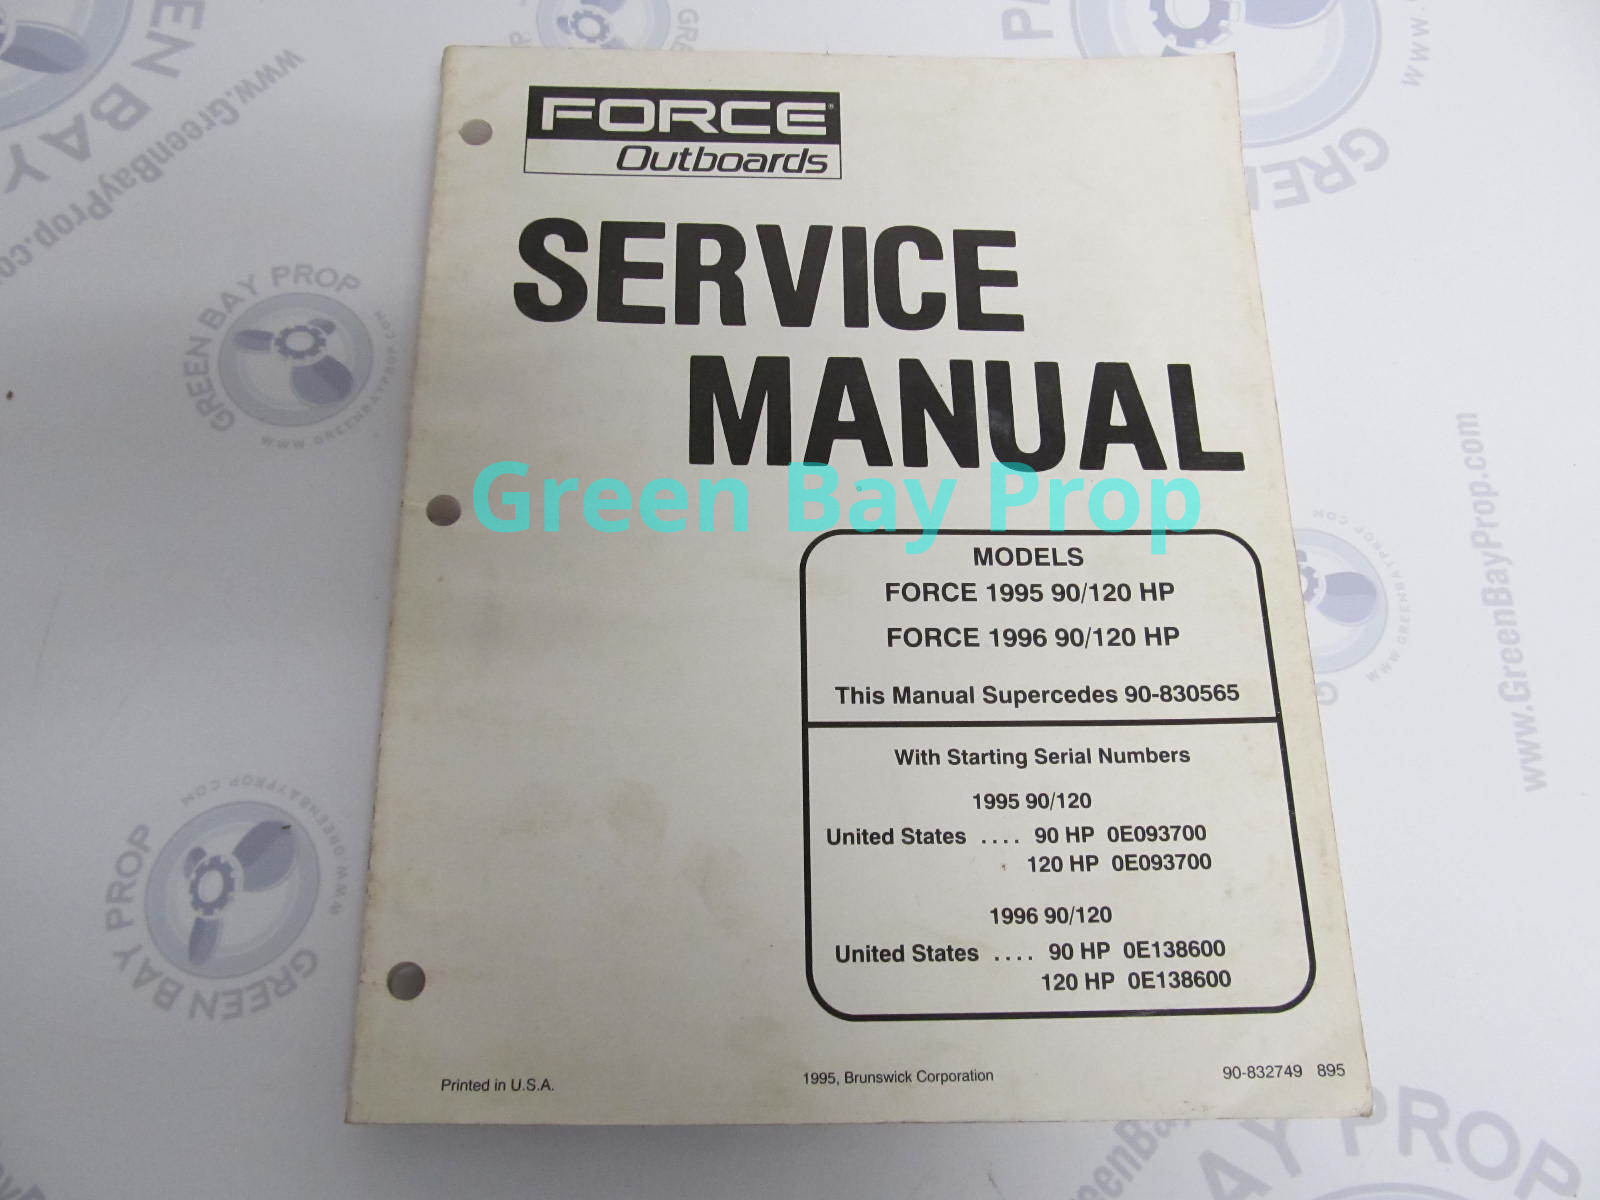 90-832749 Mercury Force Outboard Service Manual 90/120 HP ...